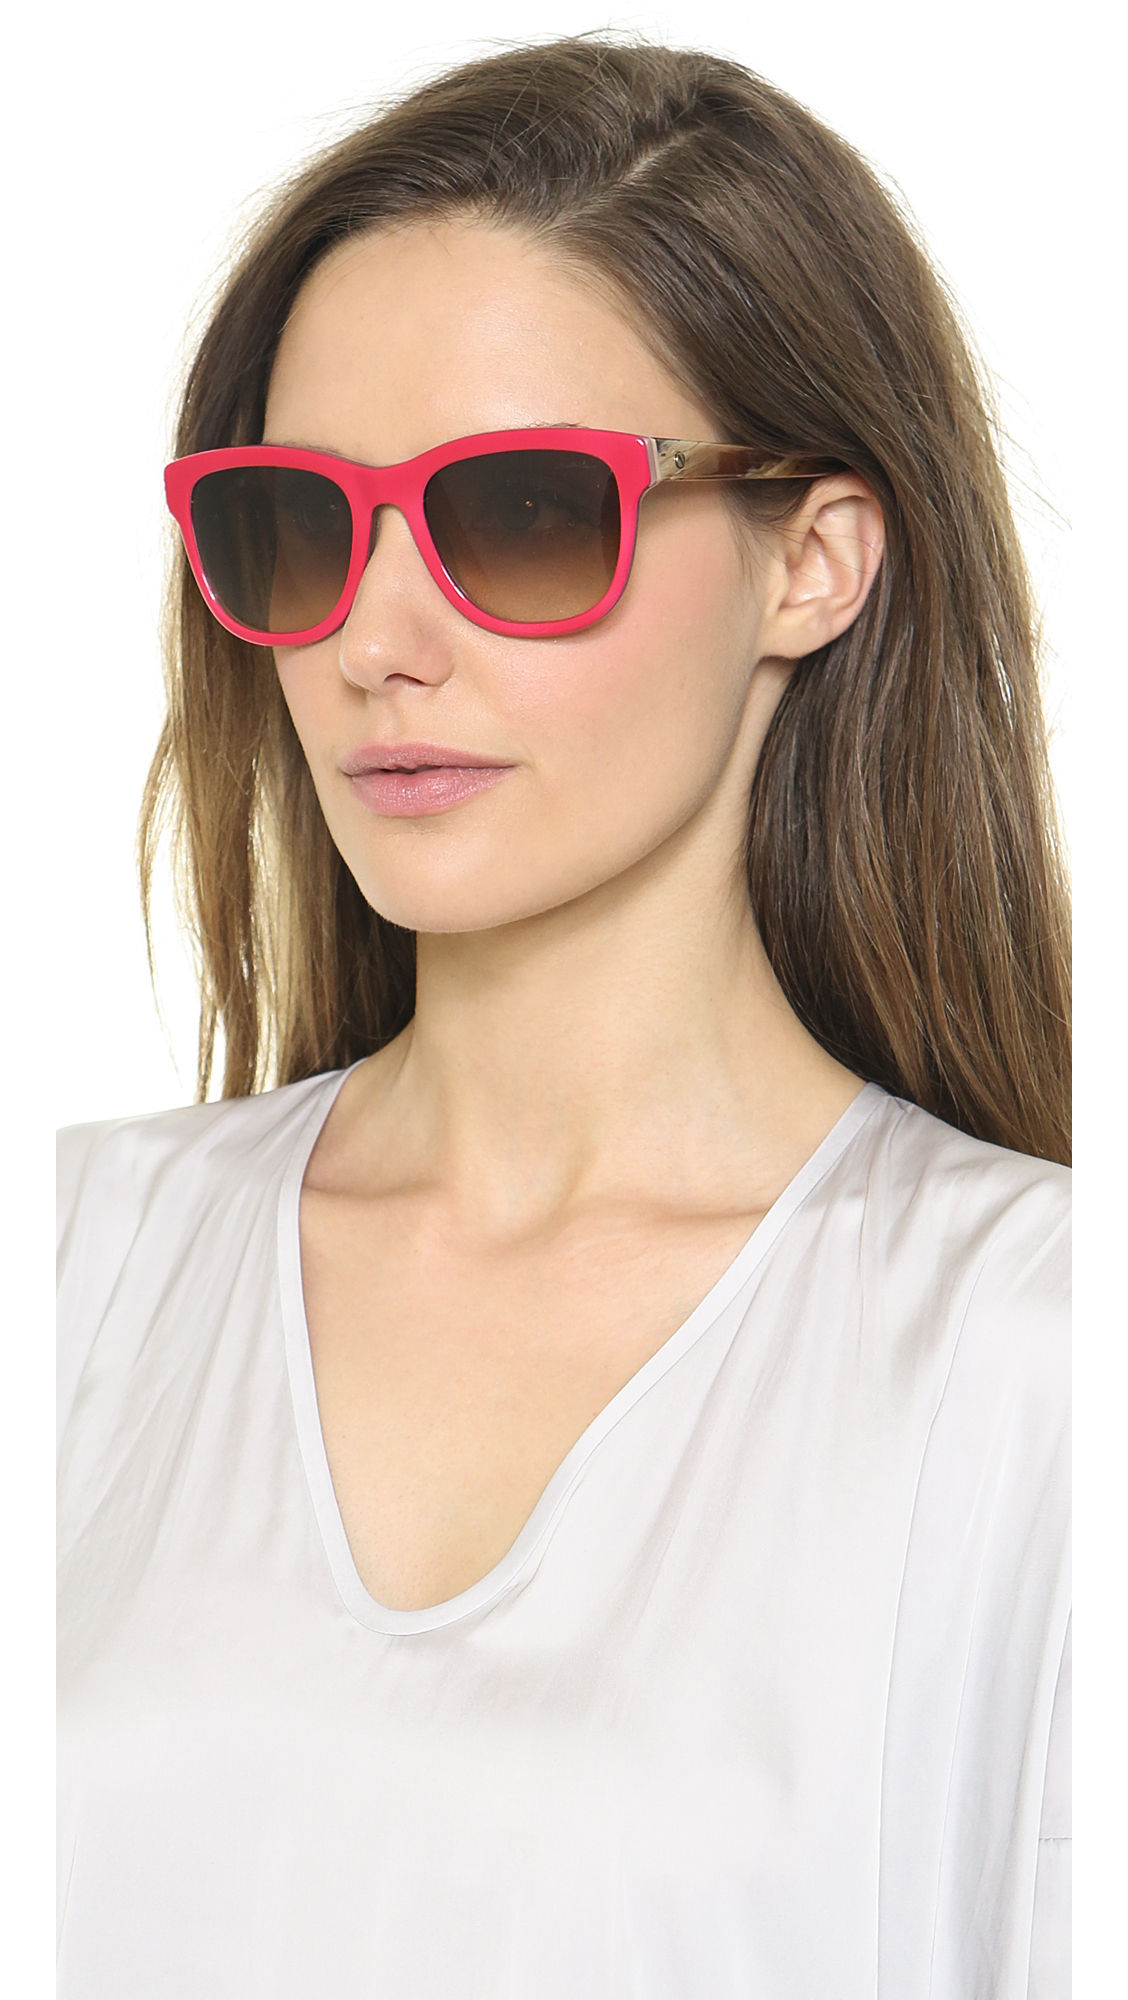 Lanvin Thick Frame Sunglasses - Shiny Red/Brown